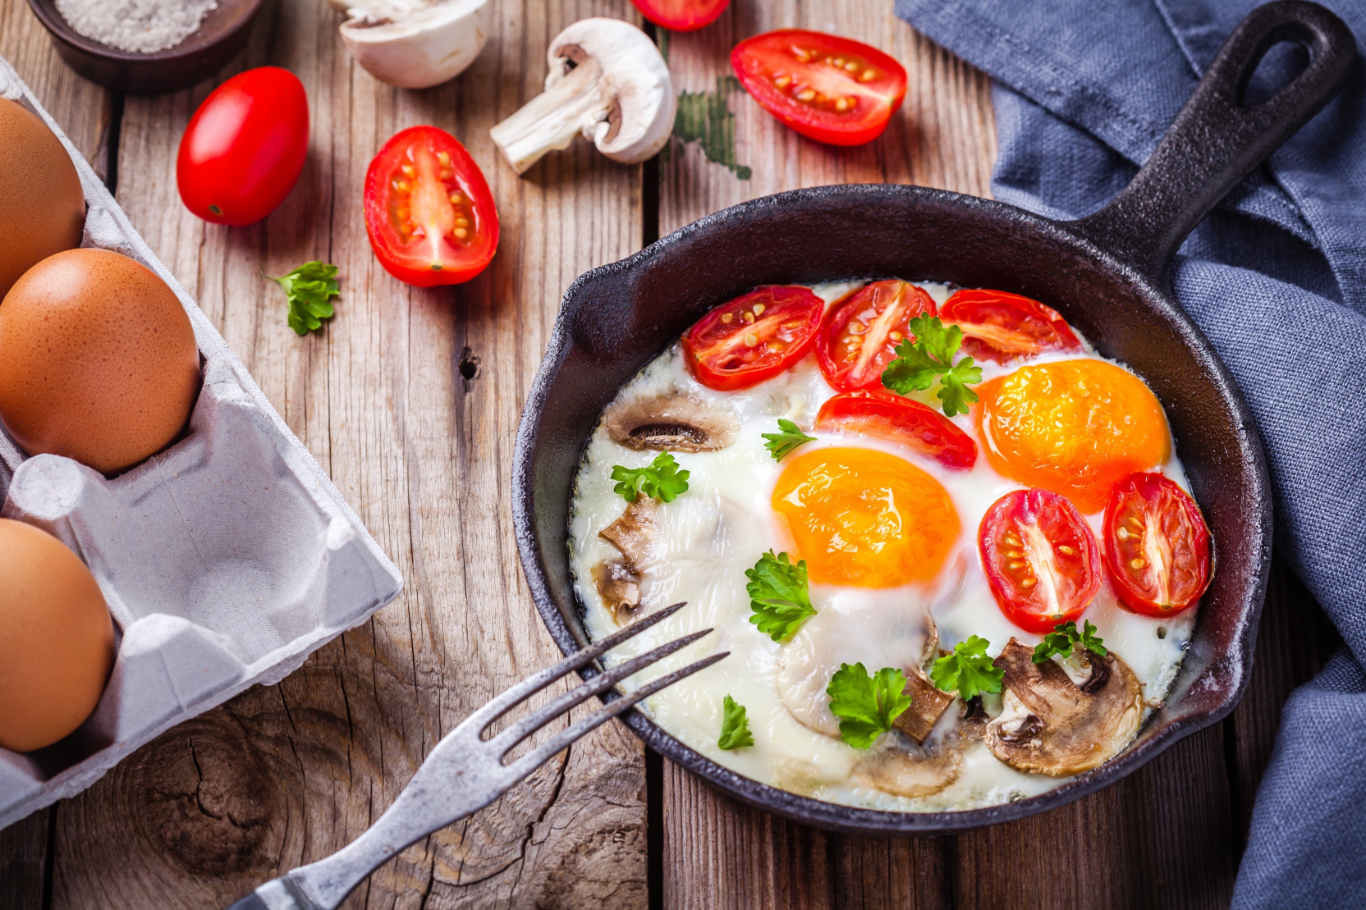 Healthy Low Carb Breakfast  7 Days of Healthy Low Carb Breakfasts Page 3 of 9